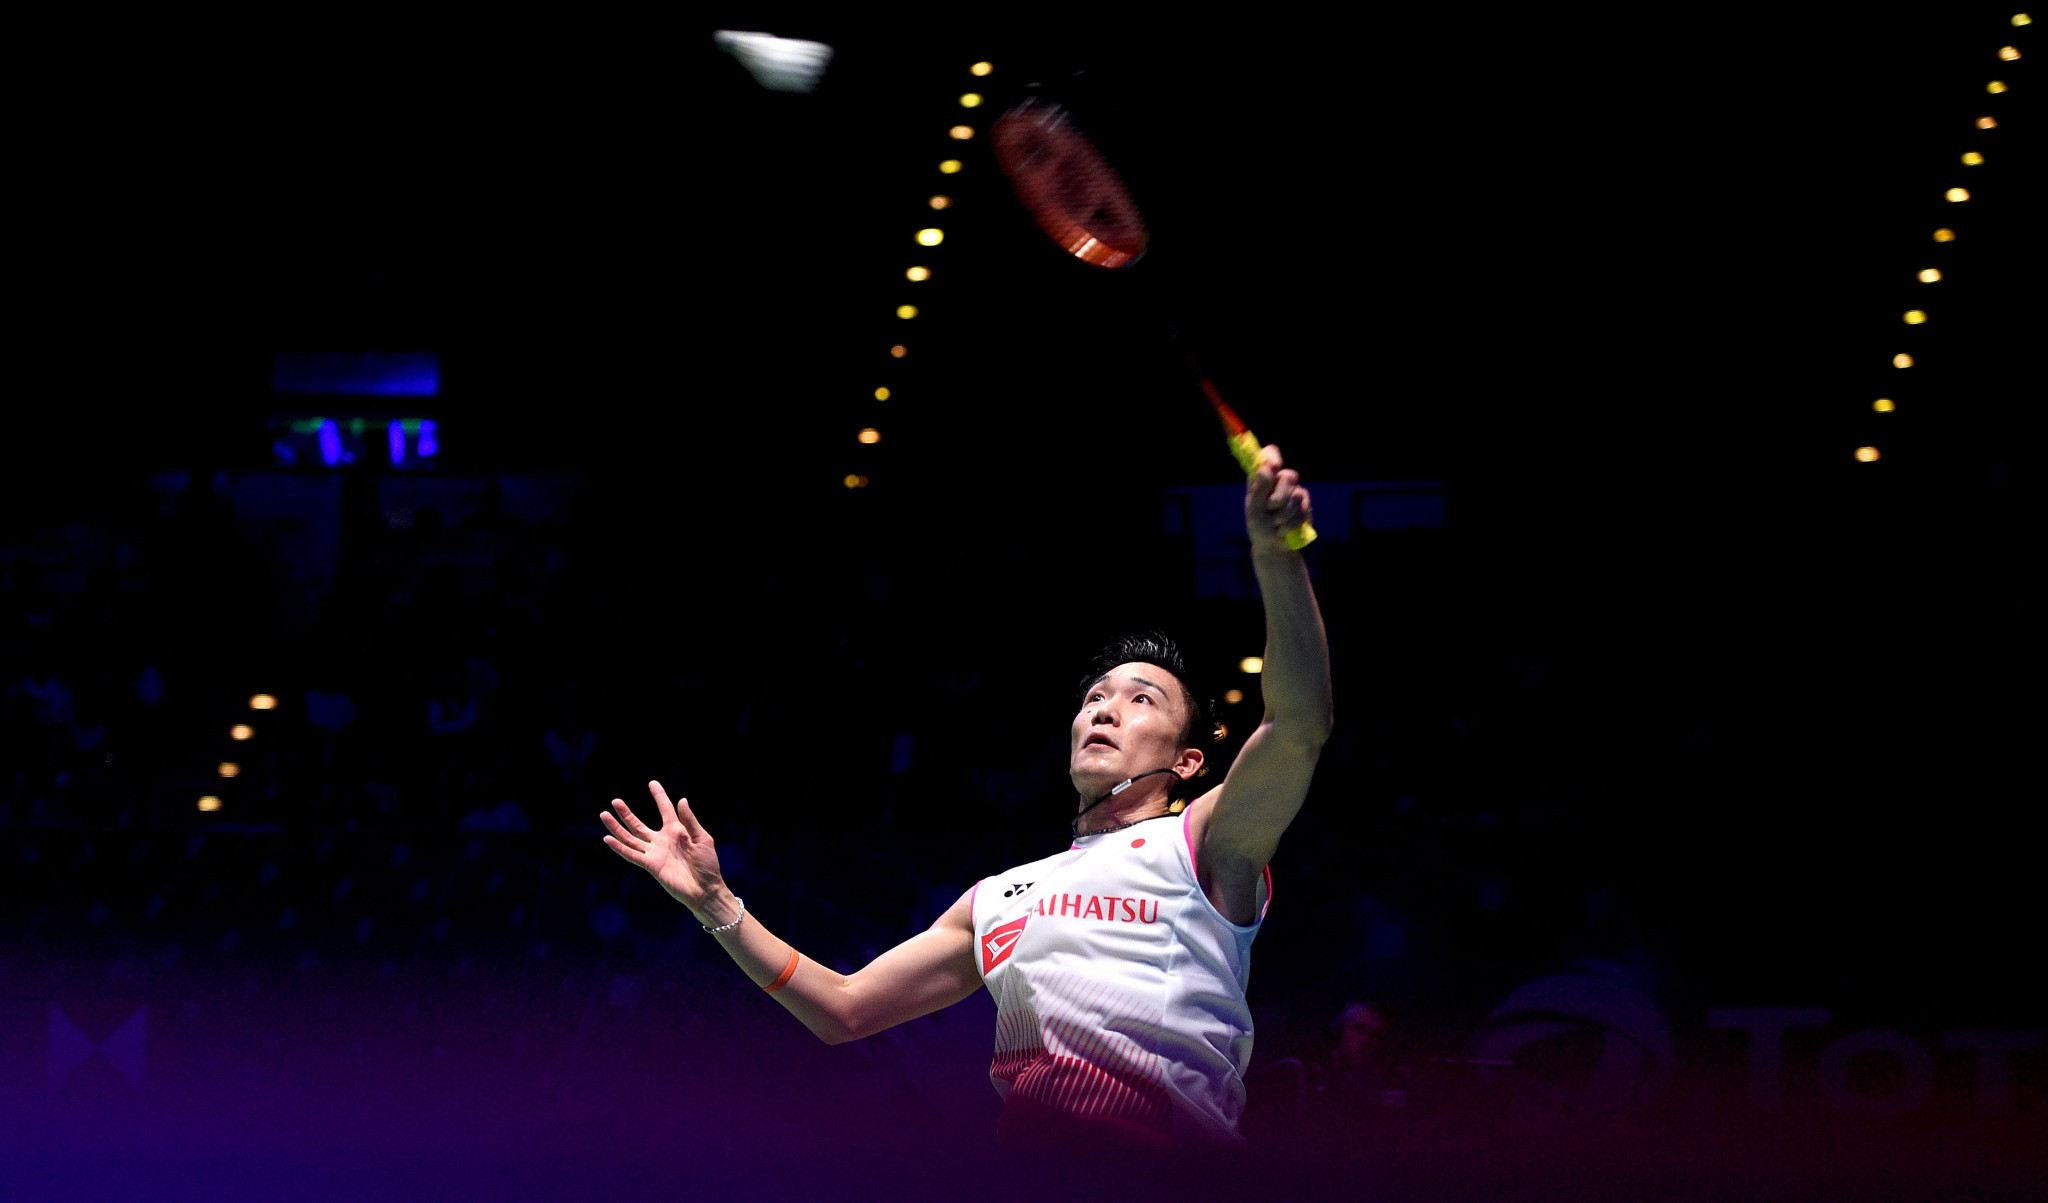 Japan's Kento Momota won his opening match at the BWF Malaysia Open ©Getty Images